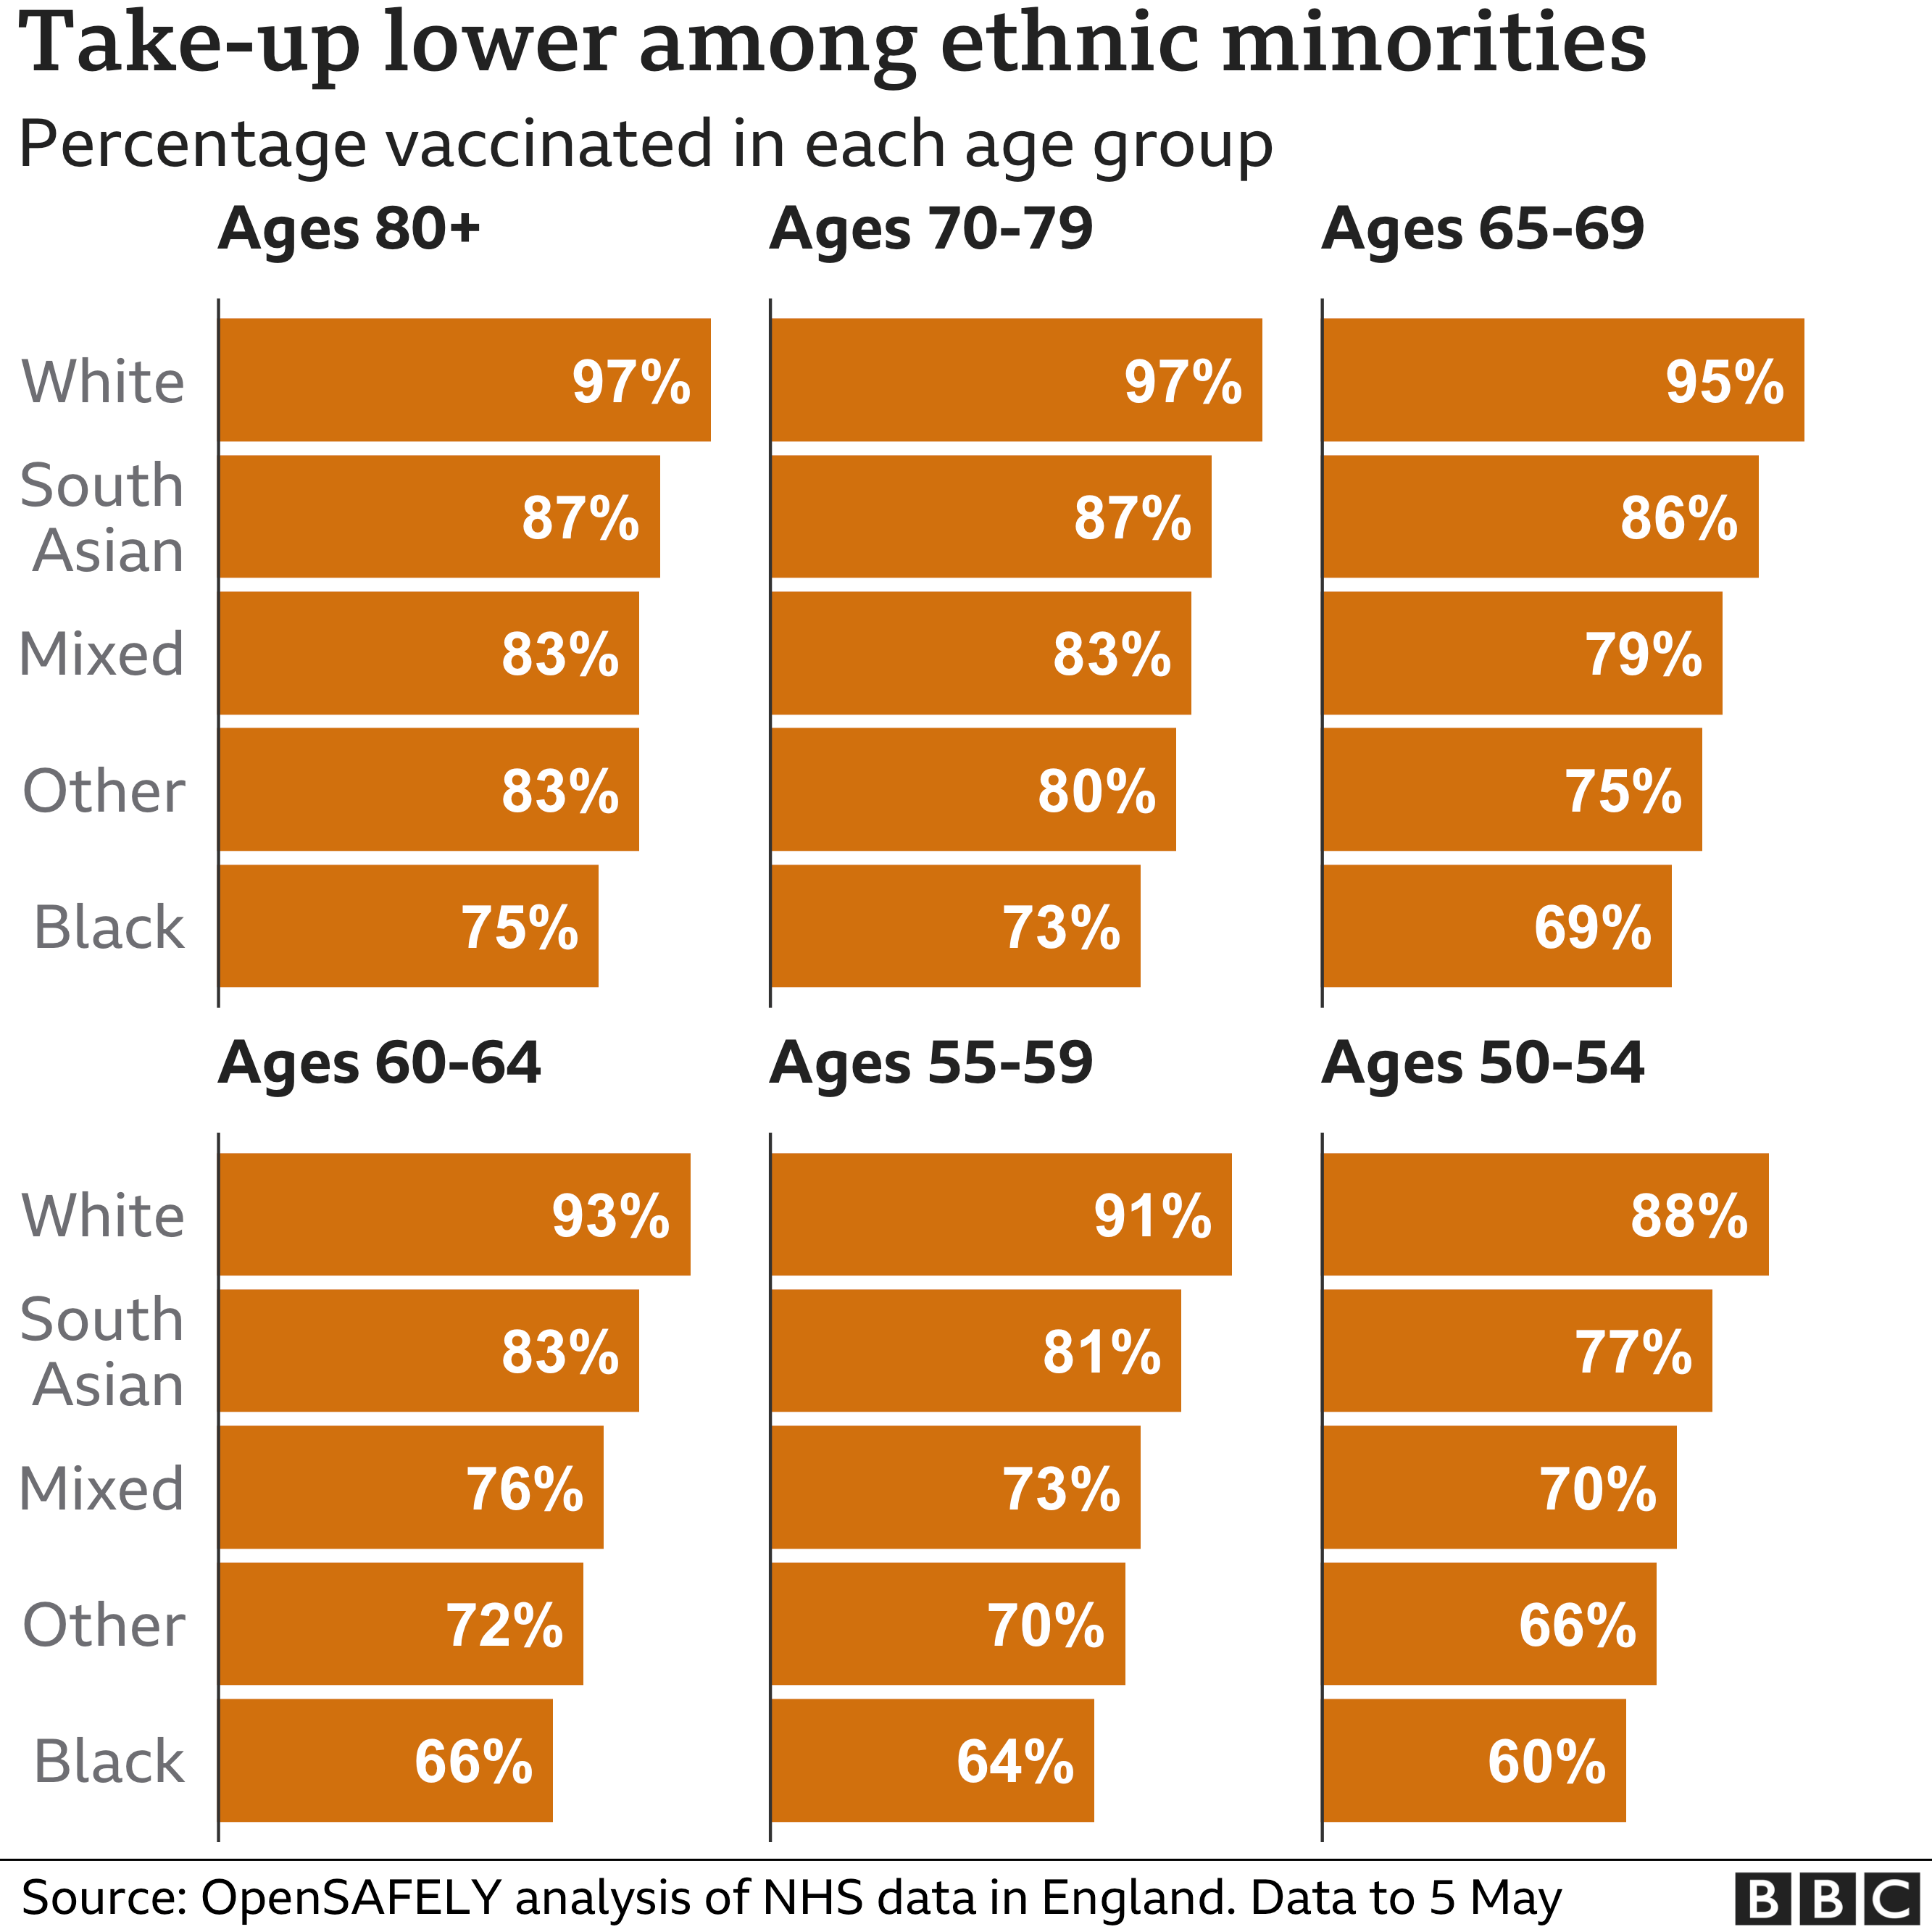 Chart showing take-up of the vaccine is lower among ethnic minorities. Updated 14 May.